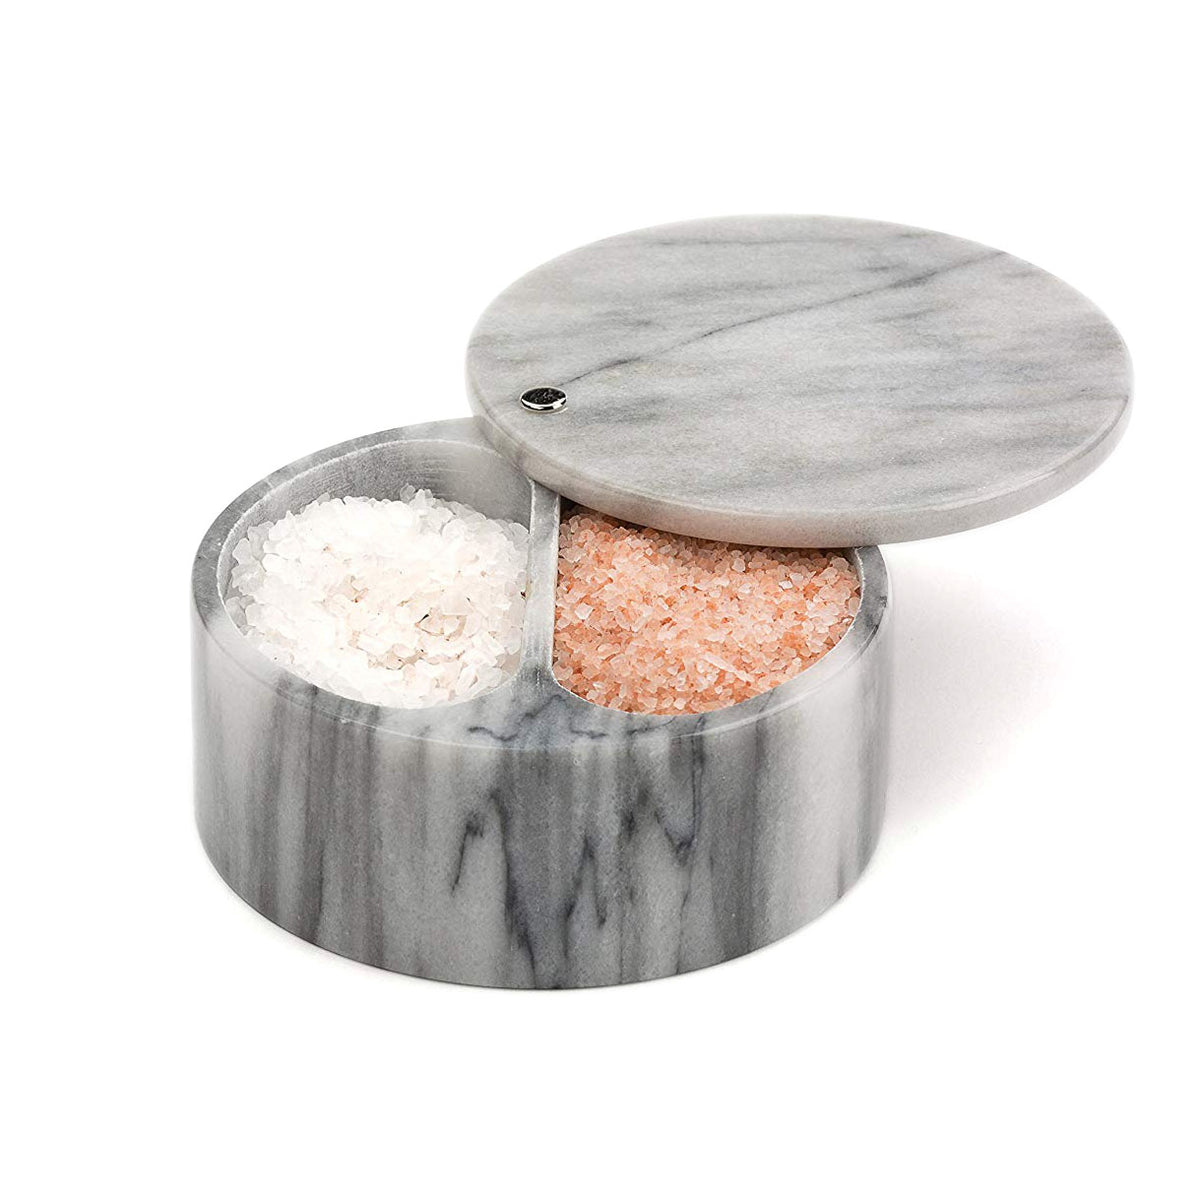 Marble Salt Boxes - Accessories - Red Stick Spice Company